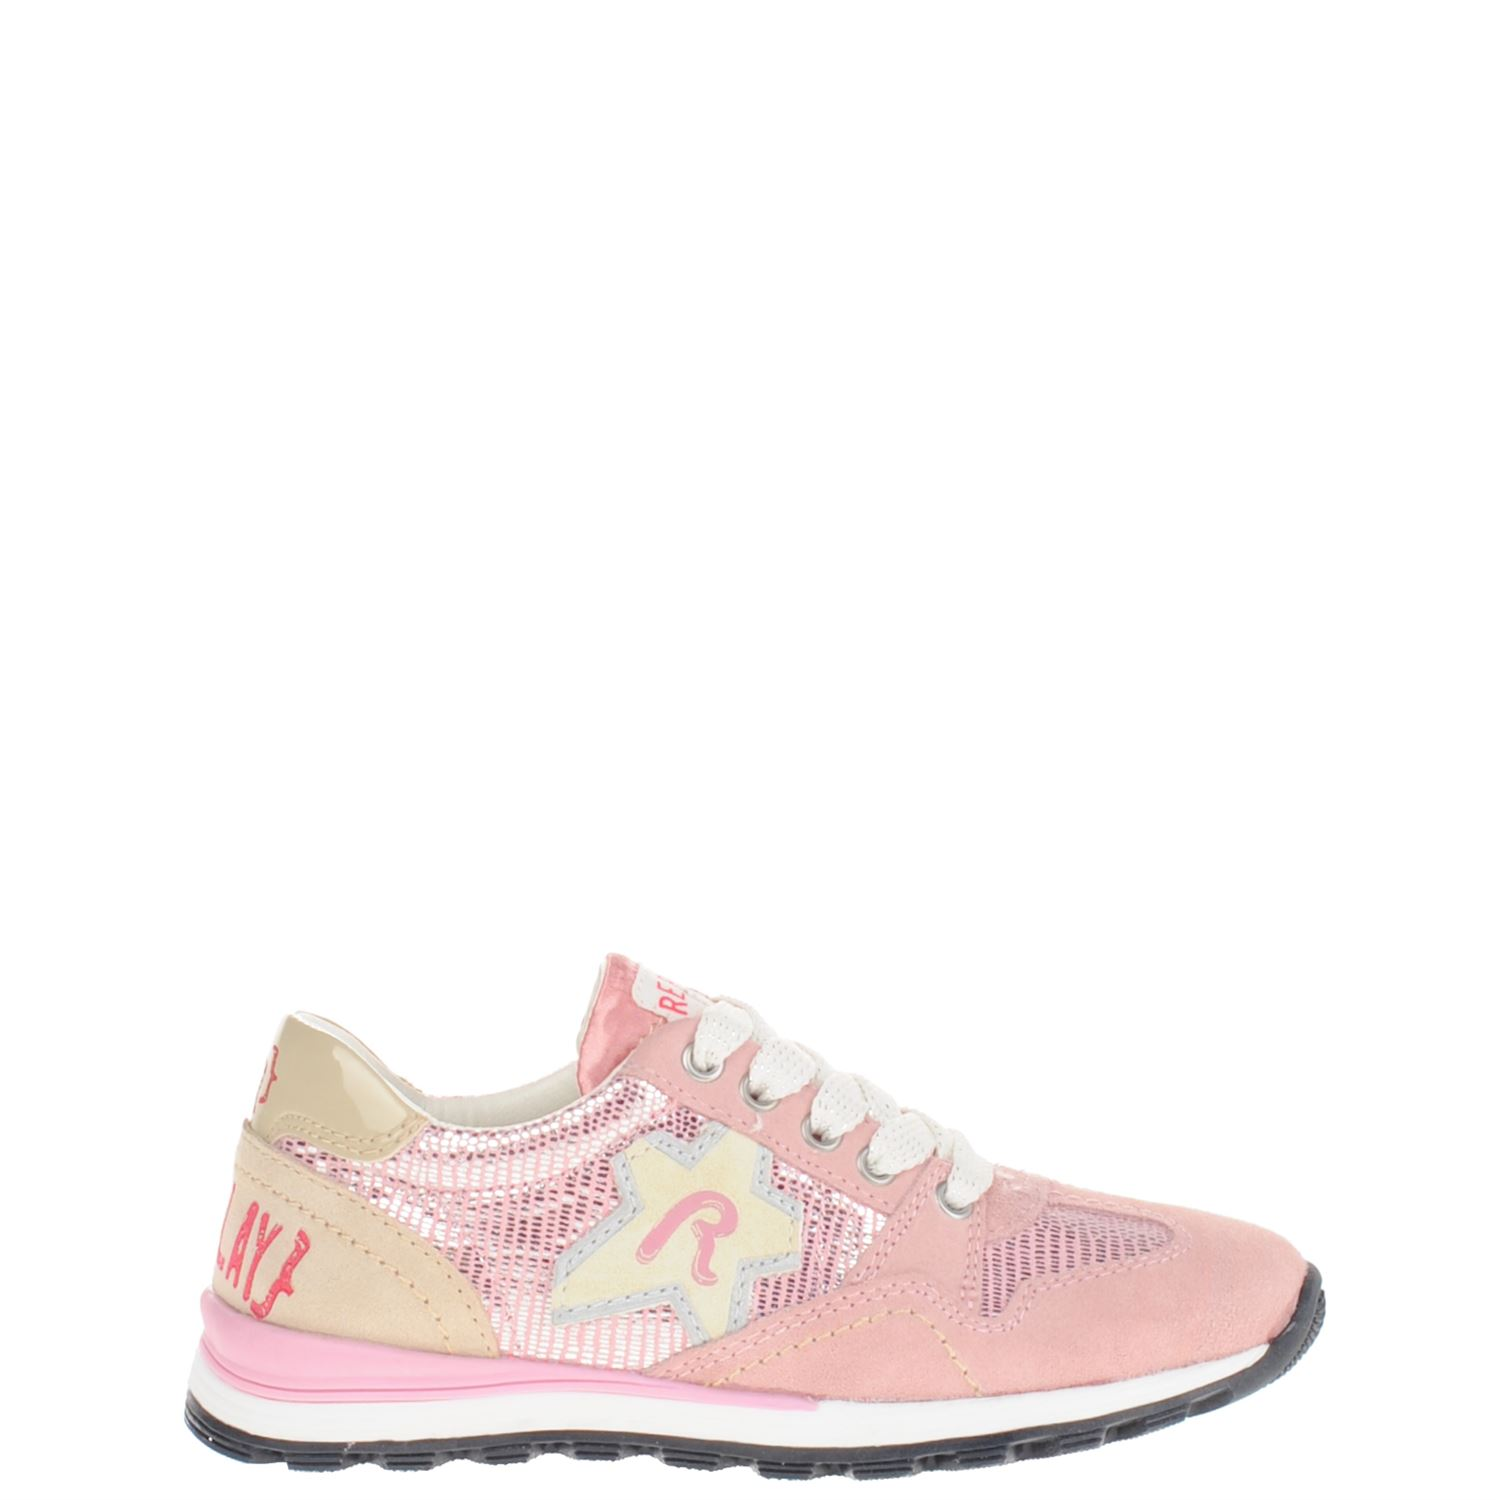 Chaussures Replay Rose Pour Les Hommes 4NSO5yZh